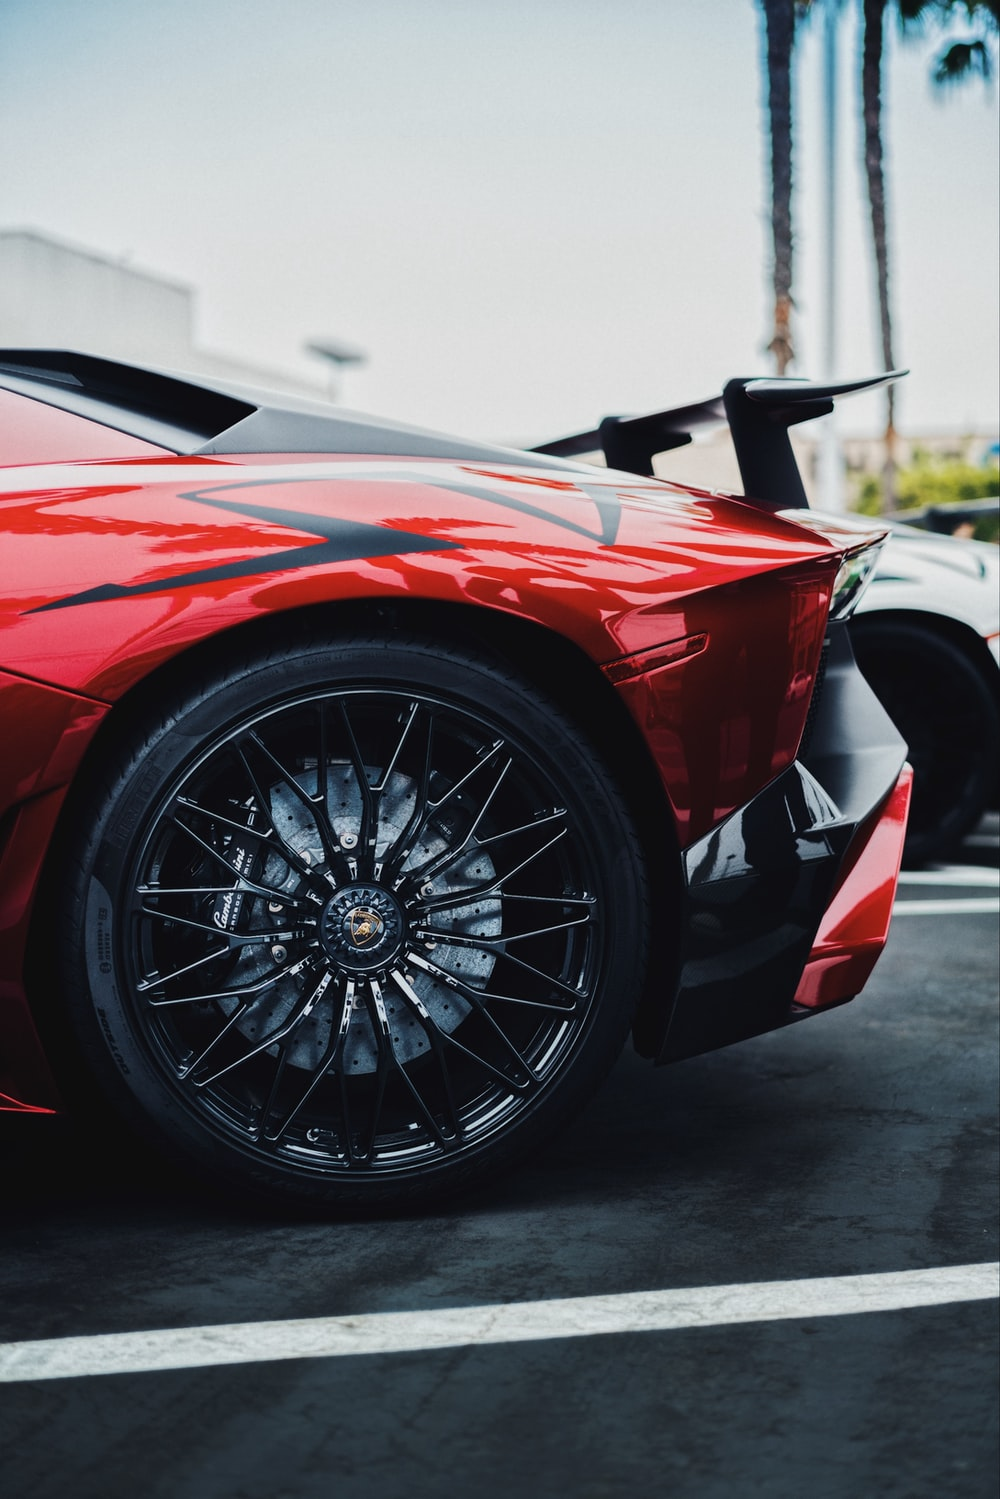 100 Lamborghini Aventador Sv Pictures Download Free Images On Unsplash